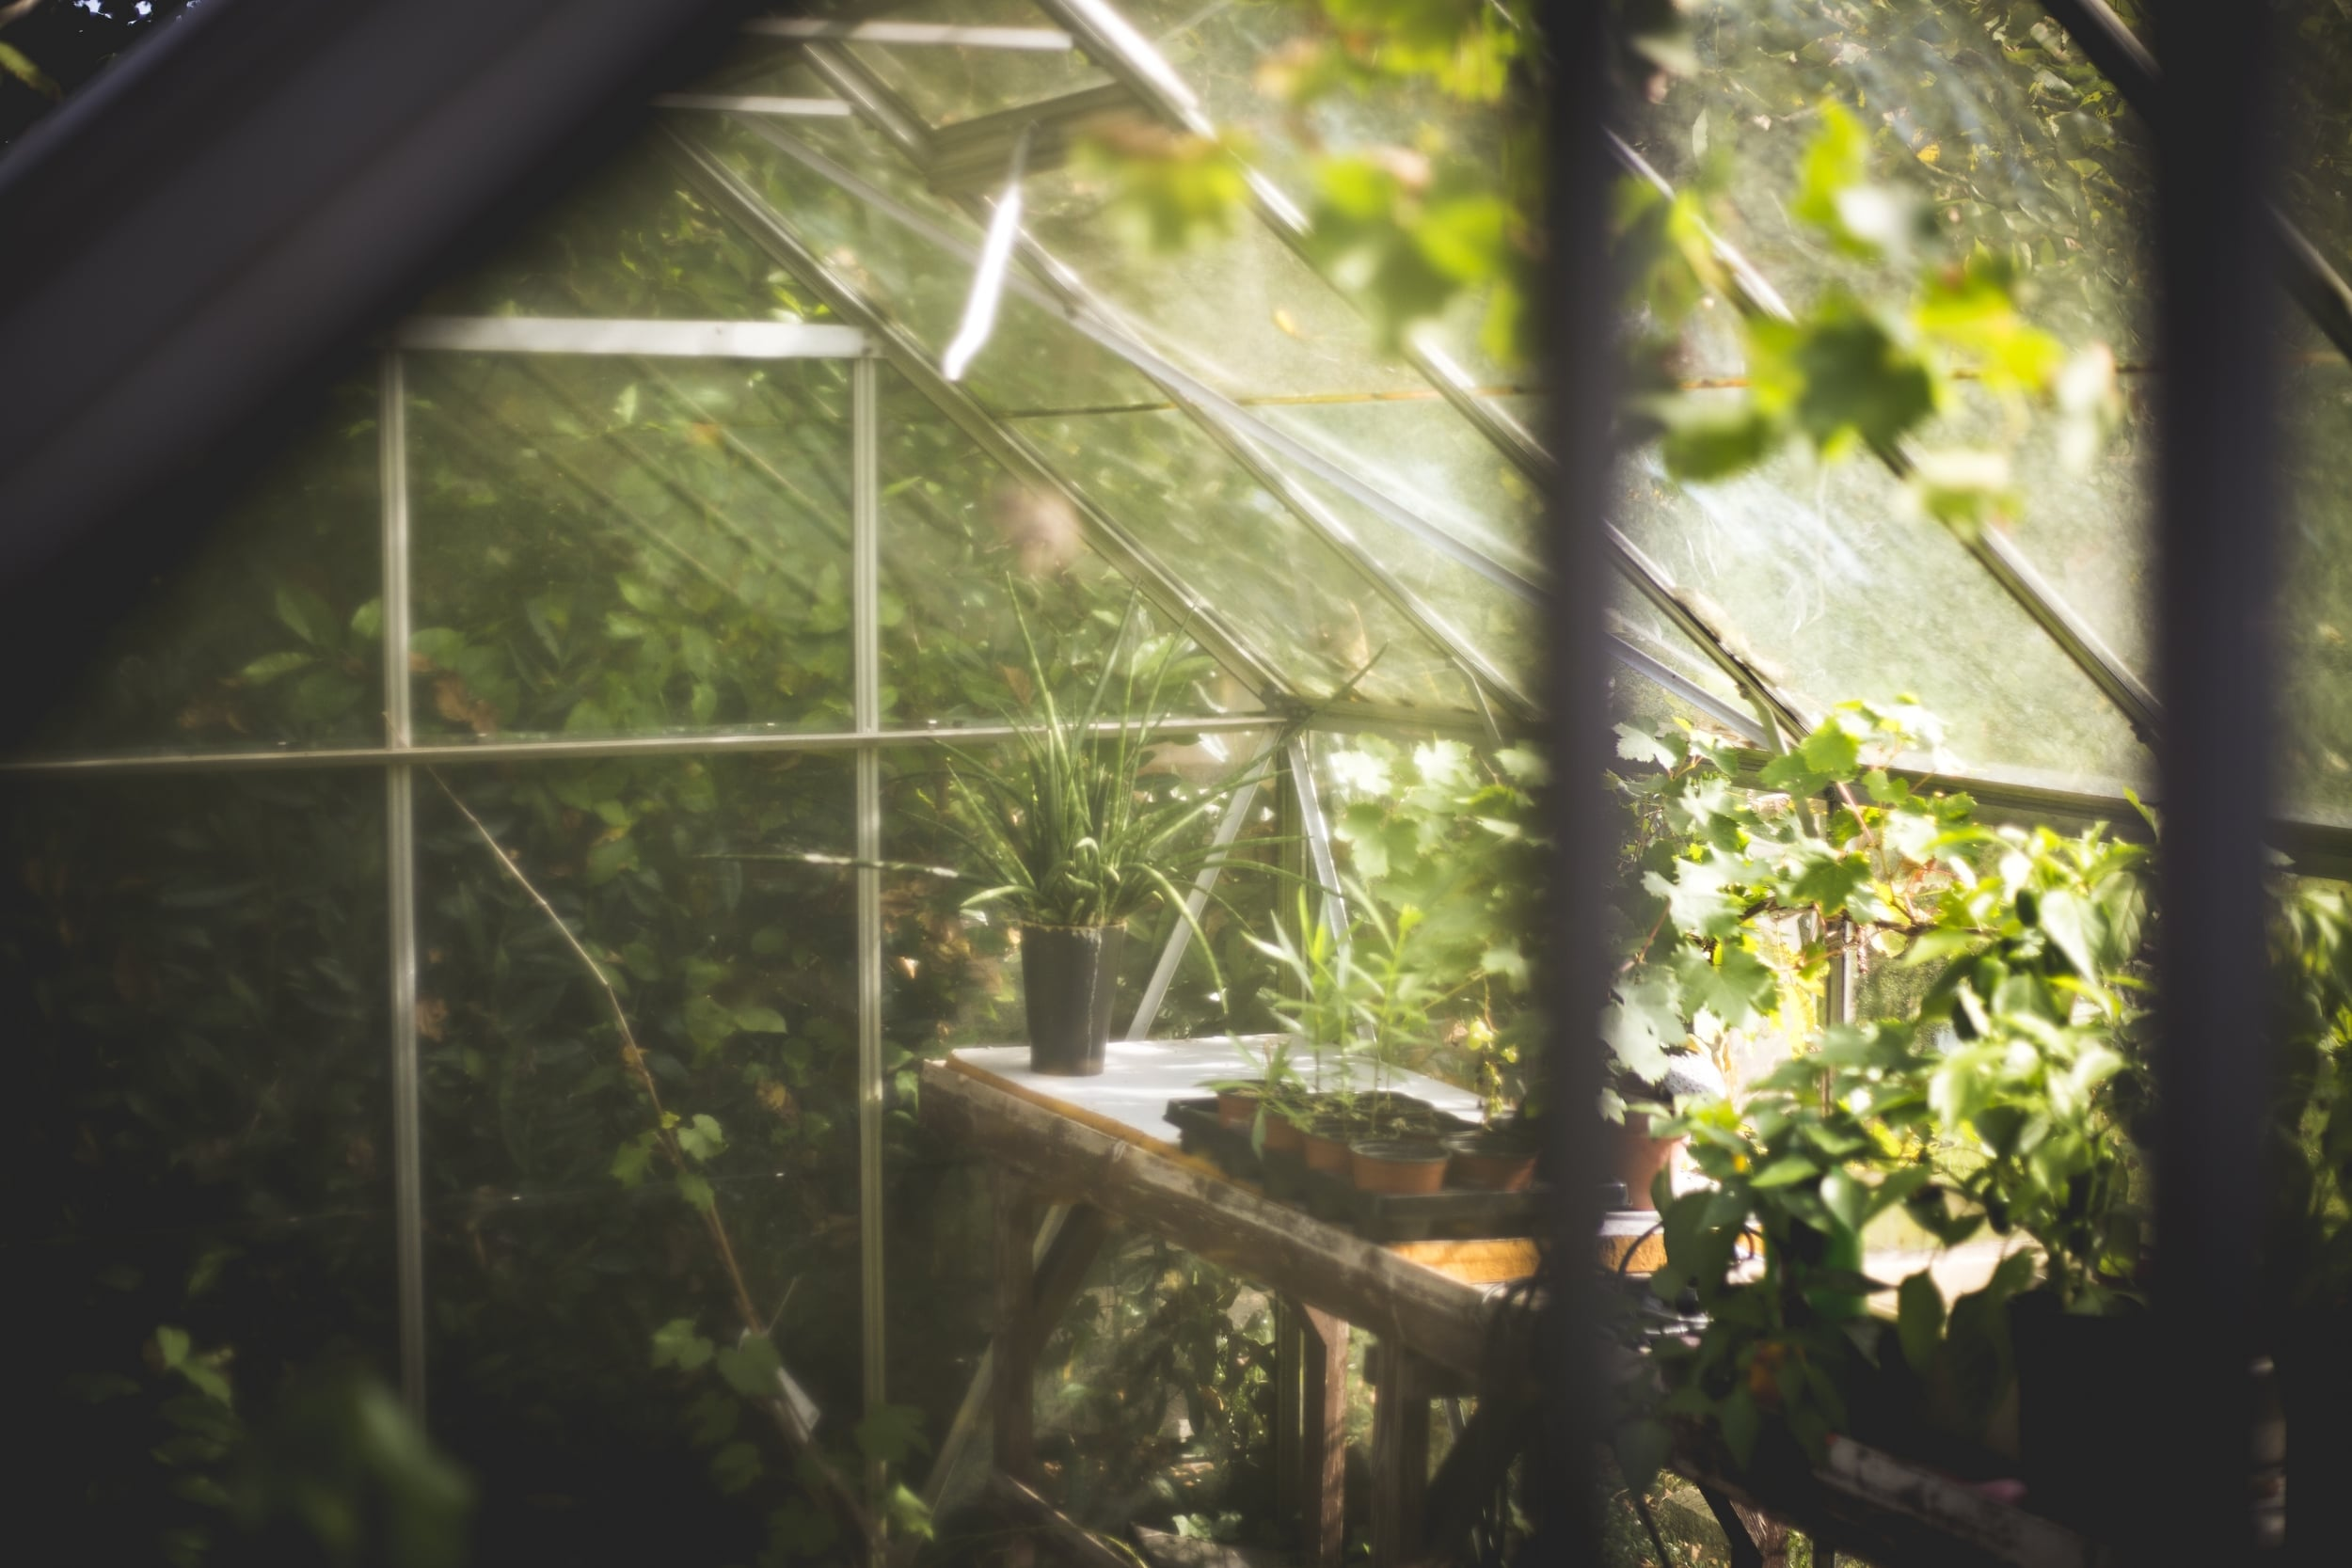 Plants have been turning sunlight into energy for millions of years. What does quantum physics have to do with it?   Thomas Verbruggen/Unsplash  (public domain)